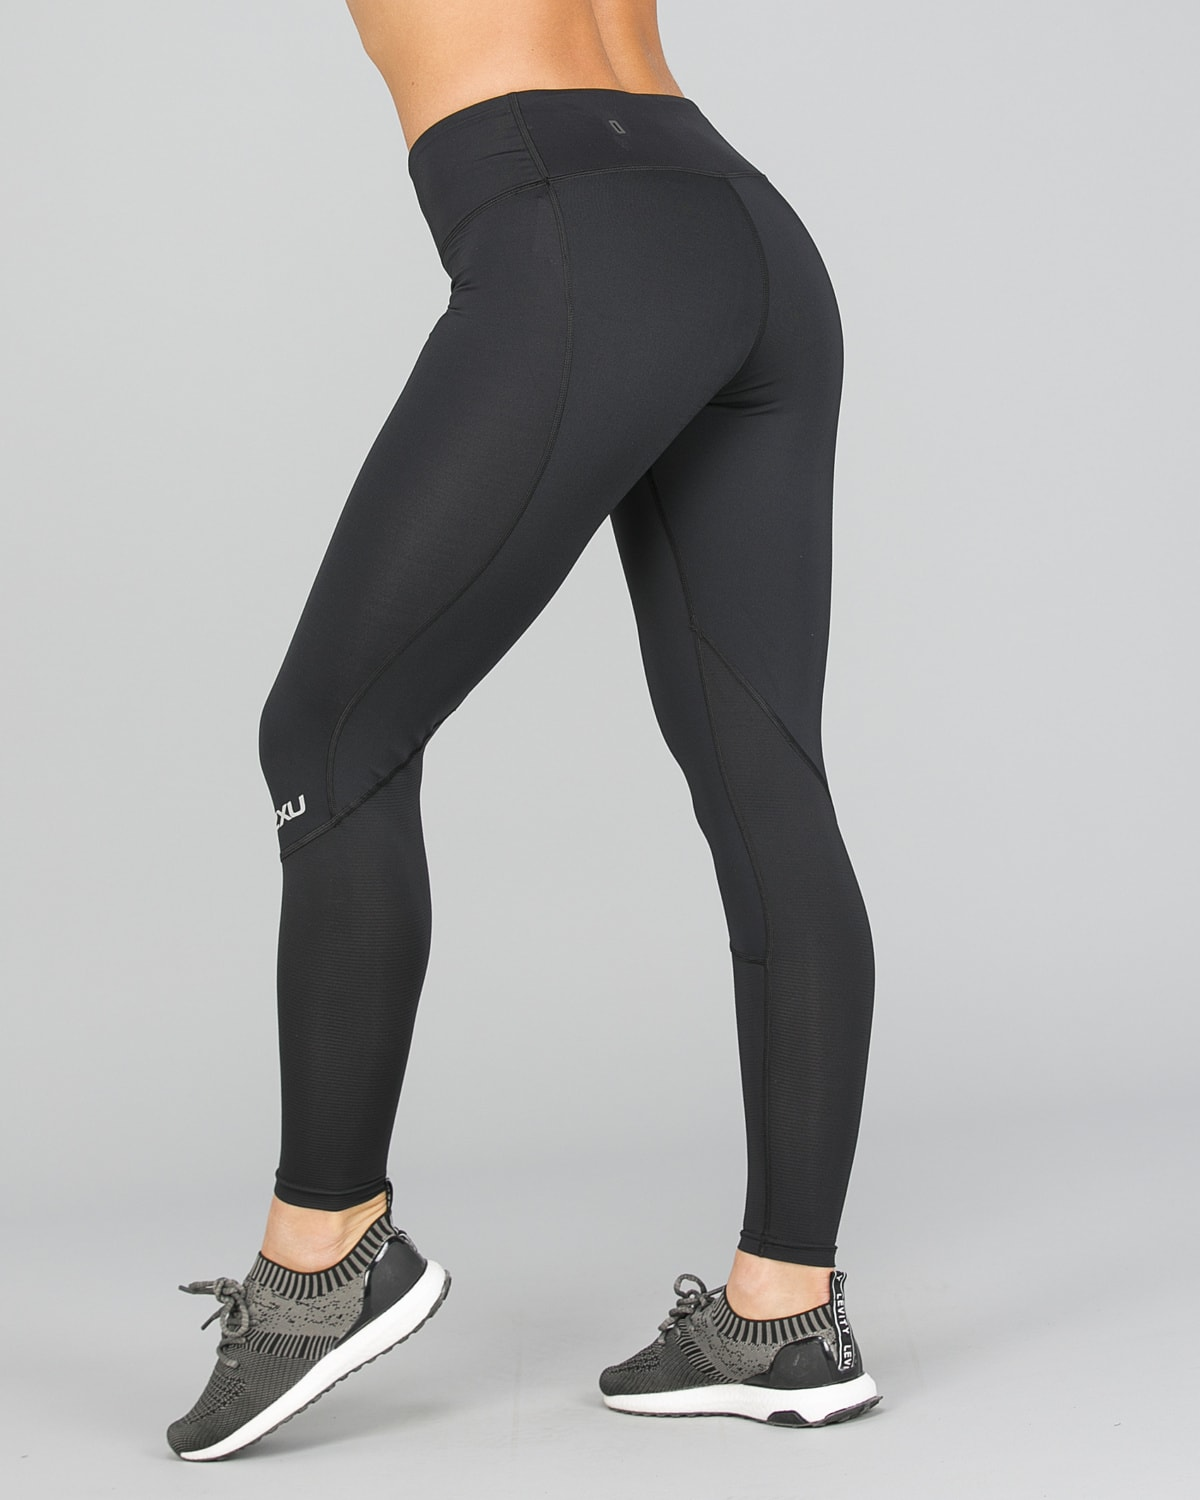 2XU Run Mid-Rise Dash Comp Tights Women – Black:Silver Reflective11